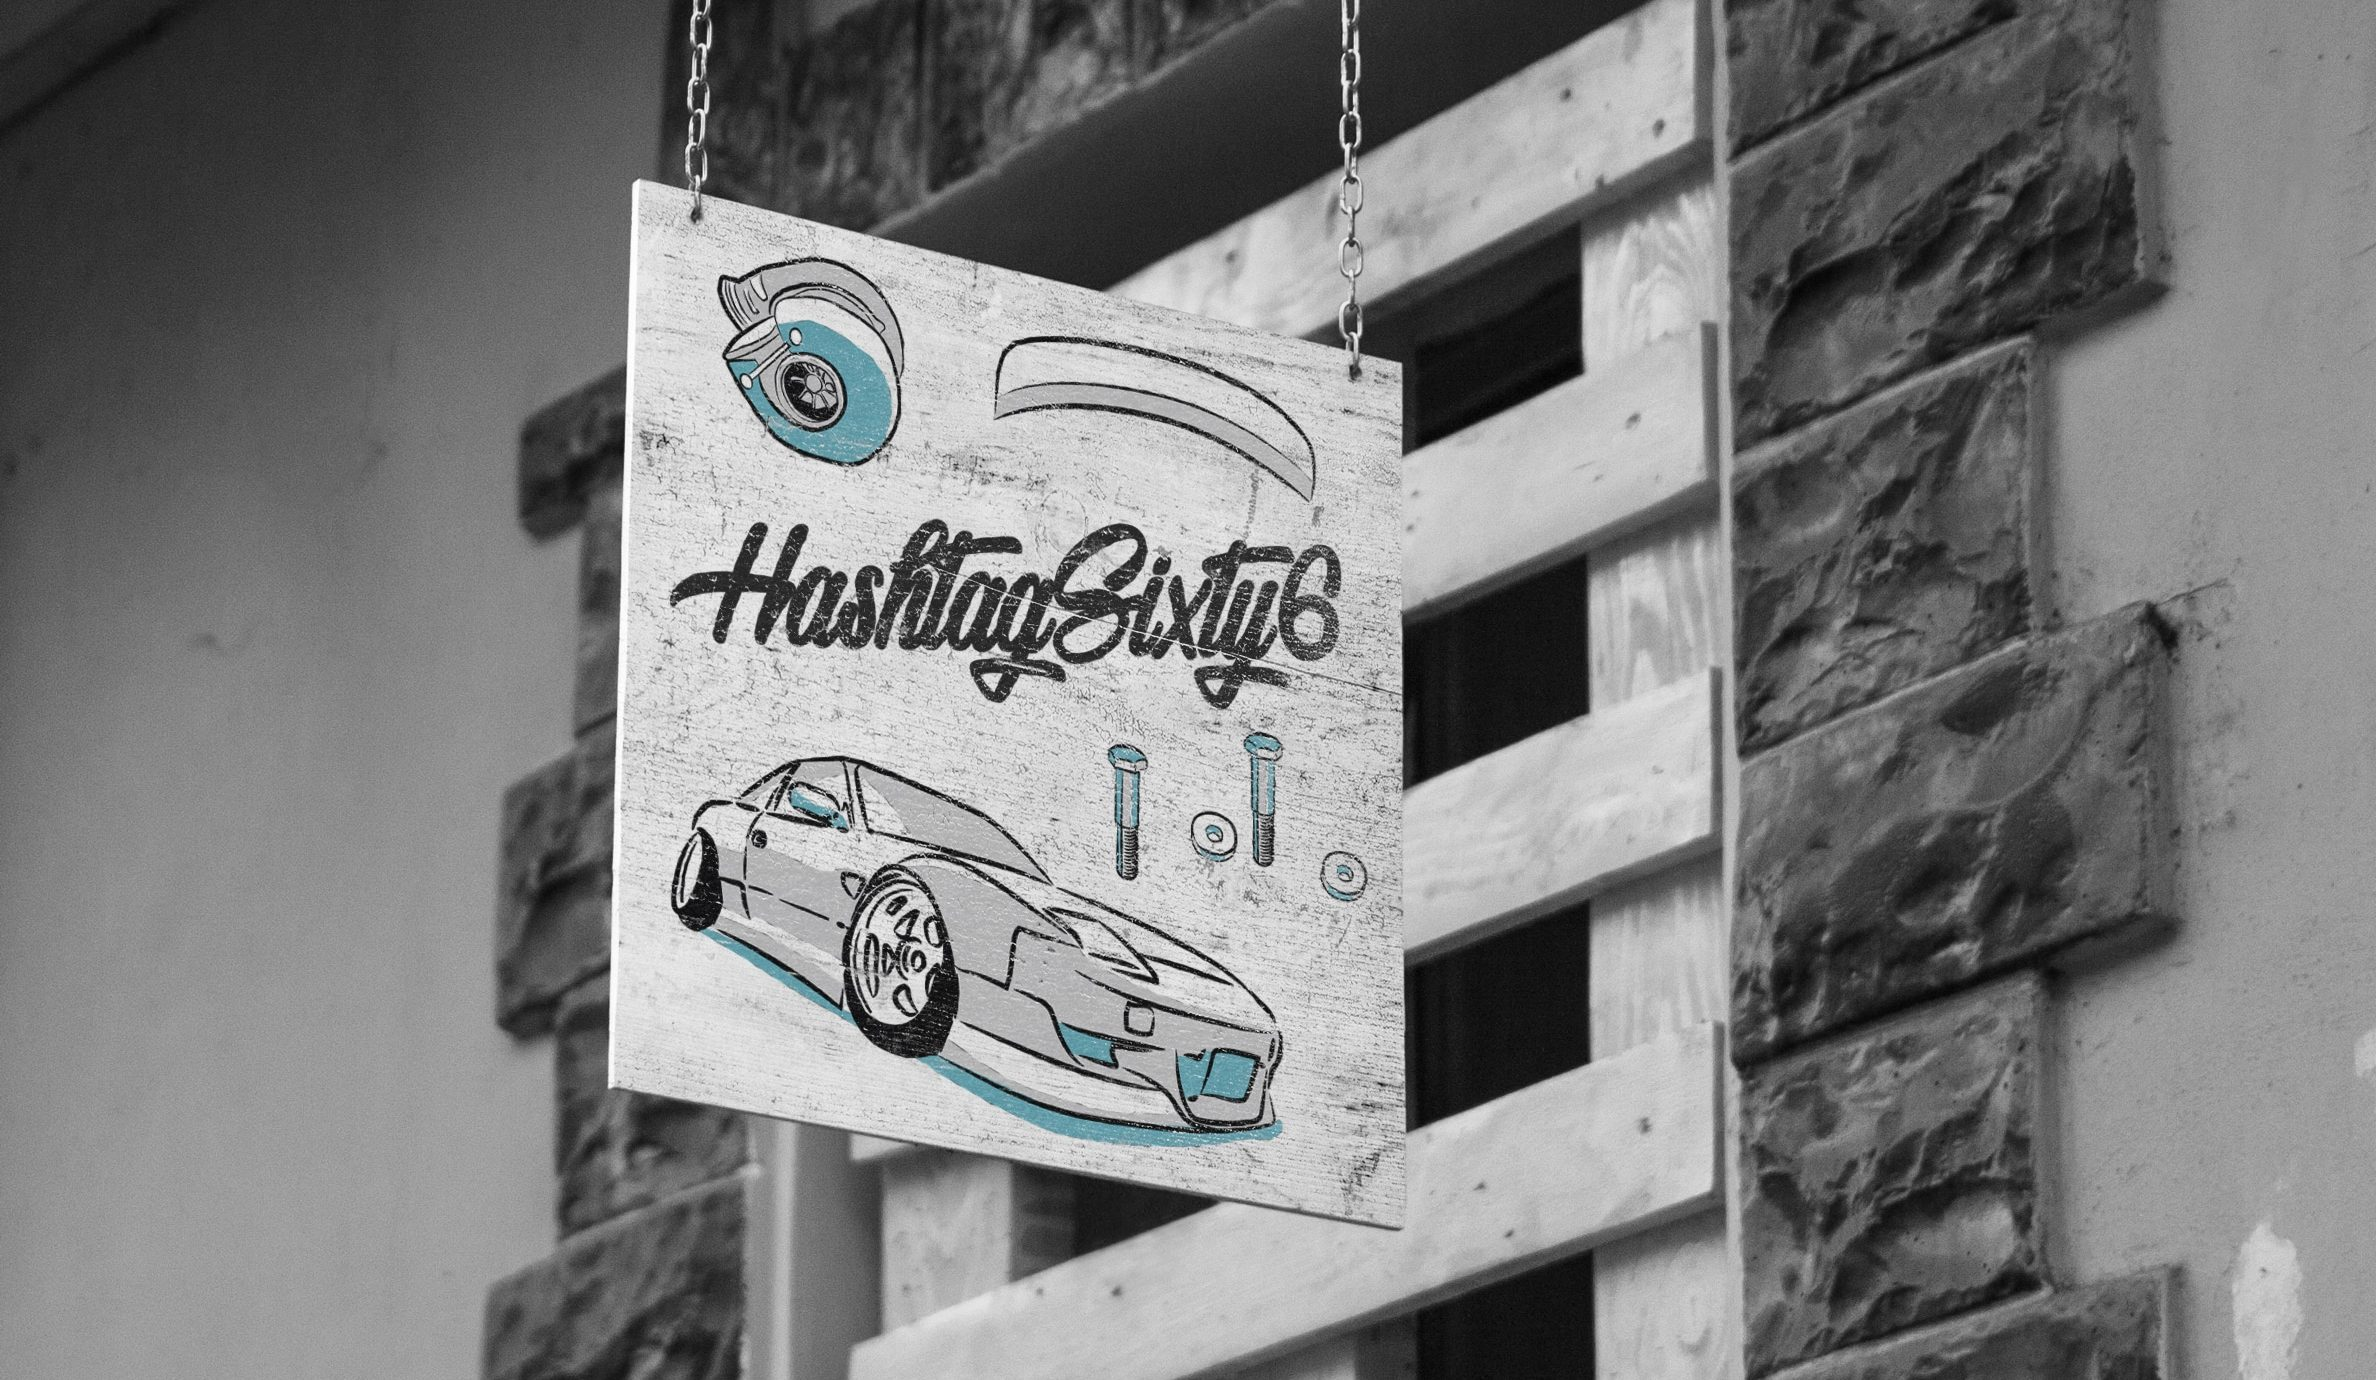 hashtag sixty six illustrated graphics on wooden hanging sign